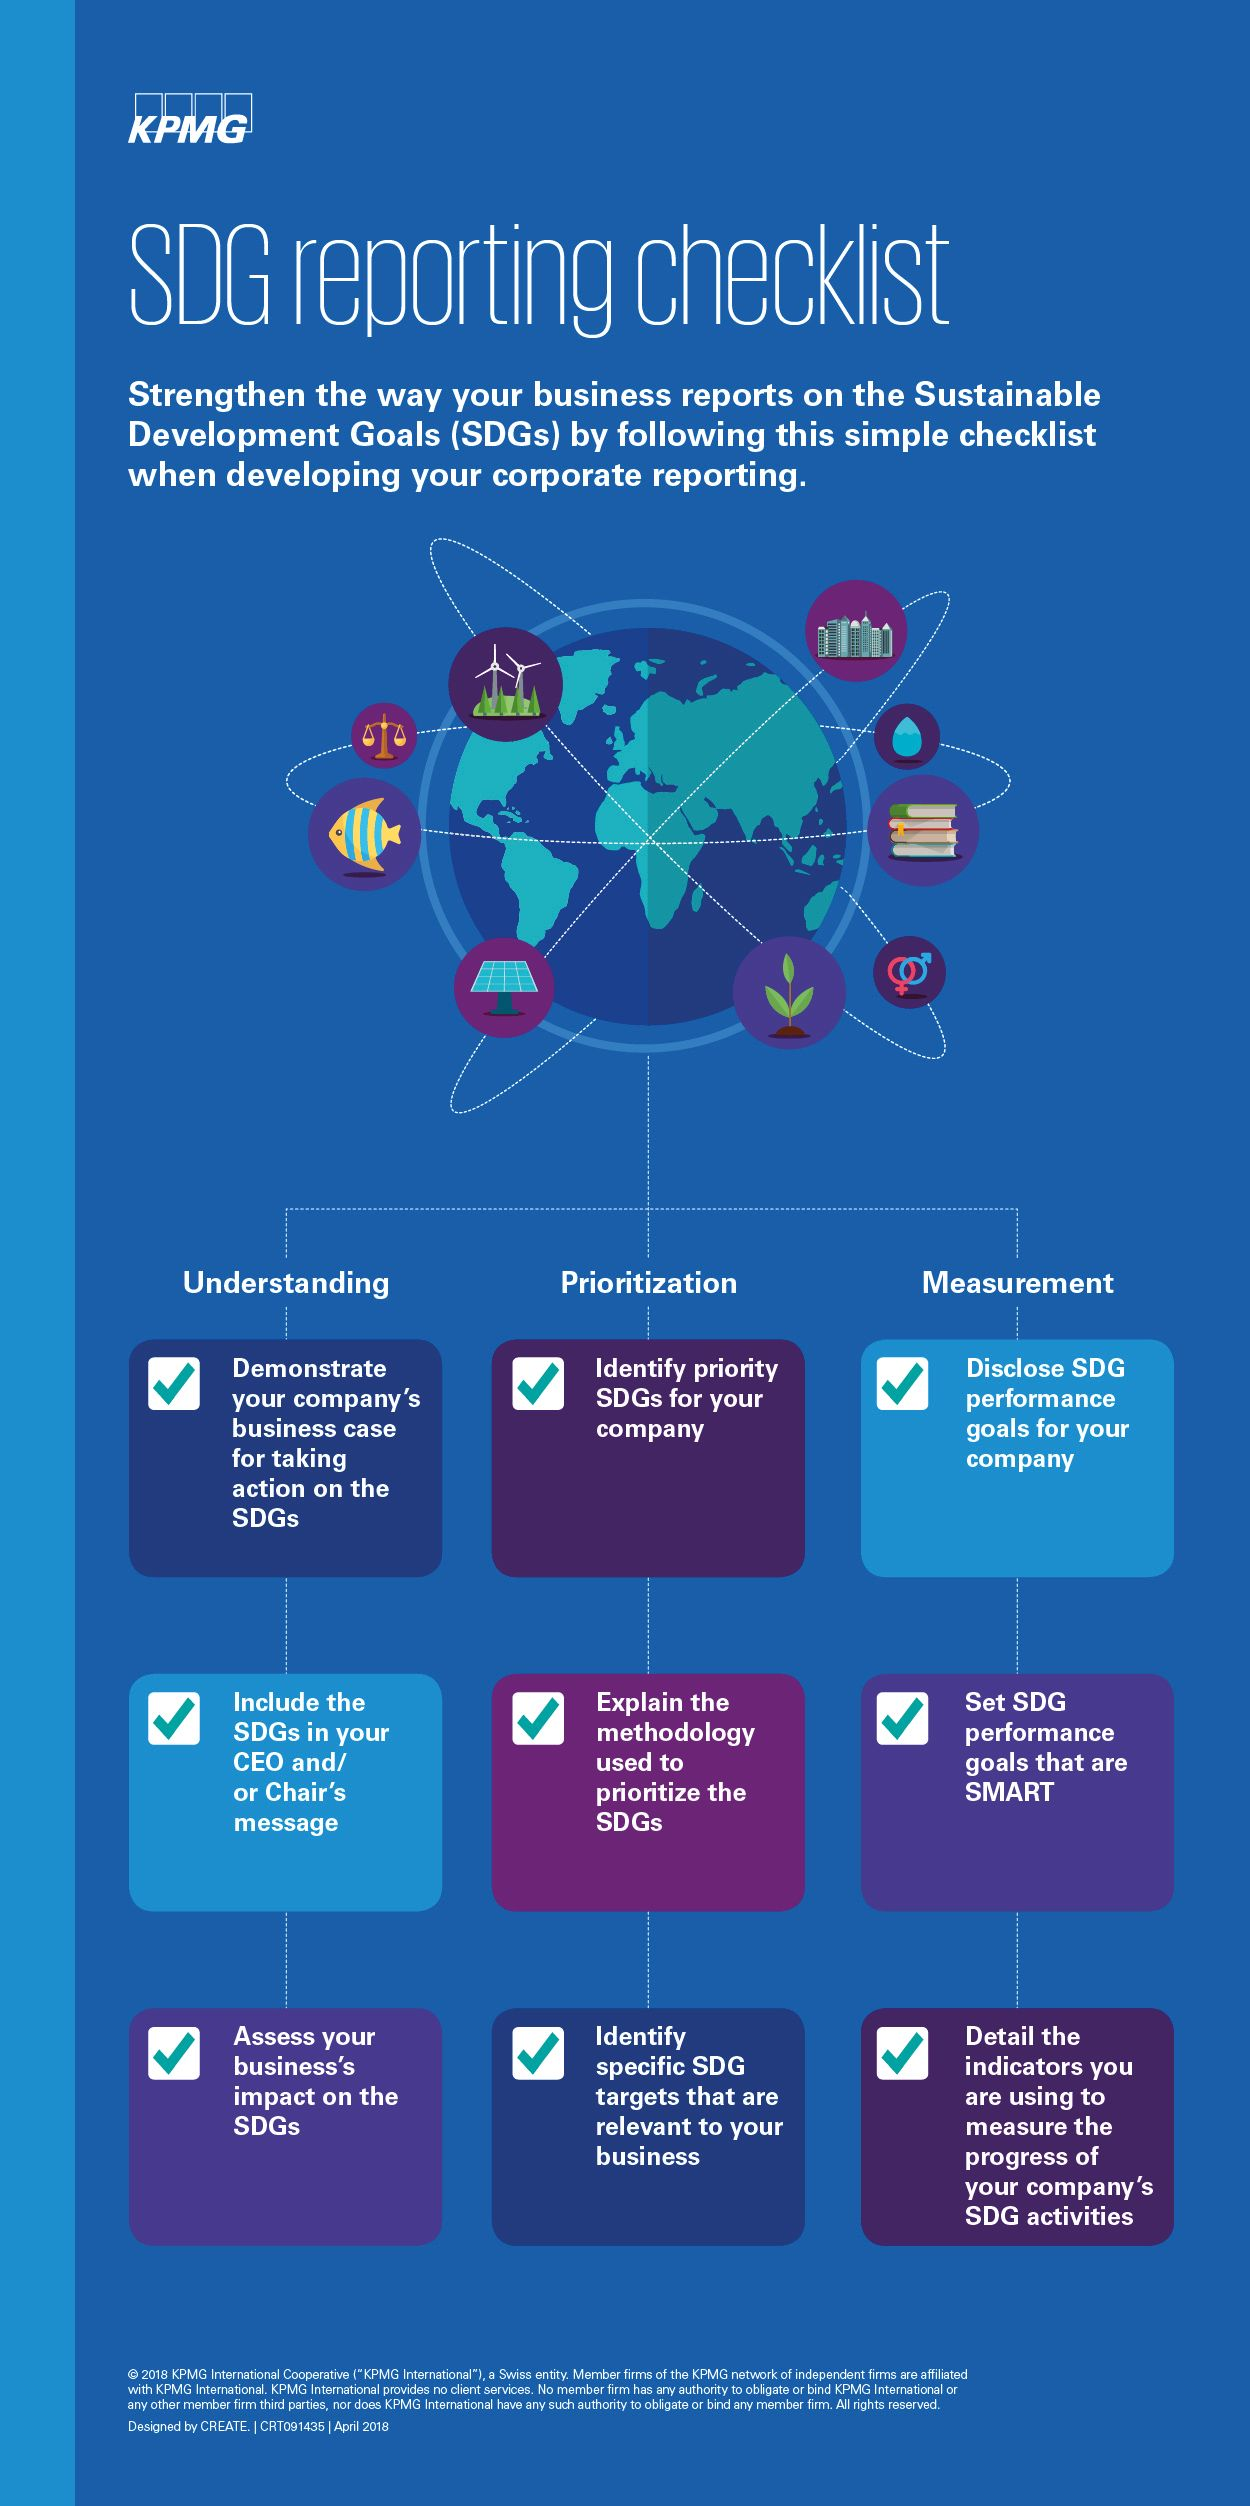 SDG reporting checklist Infographic